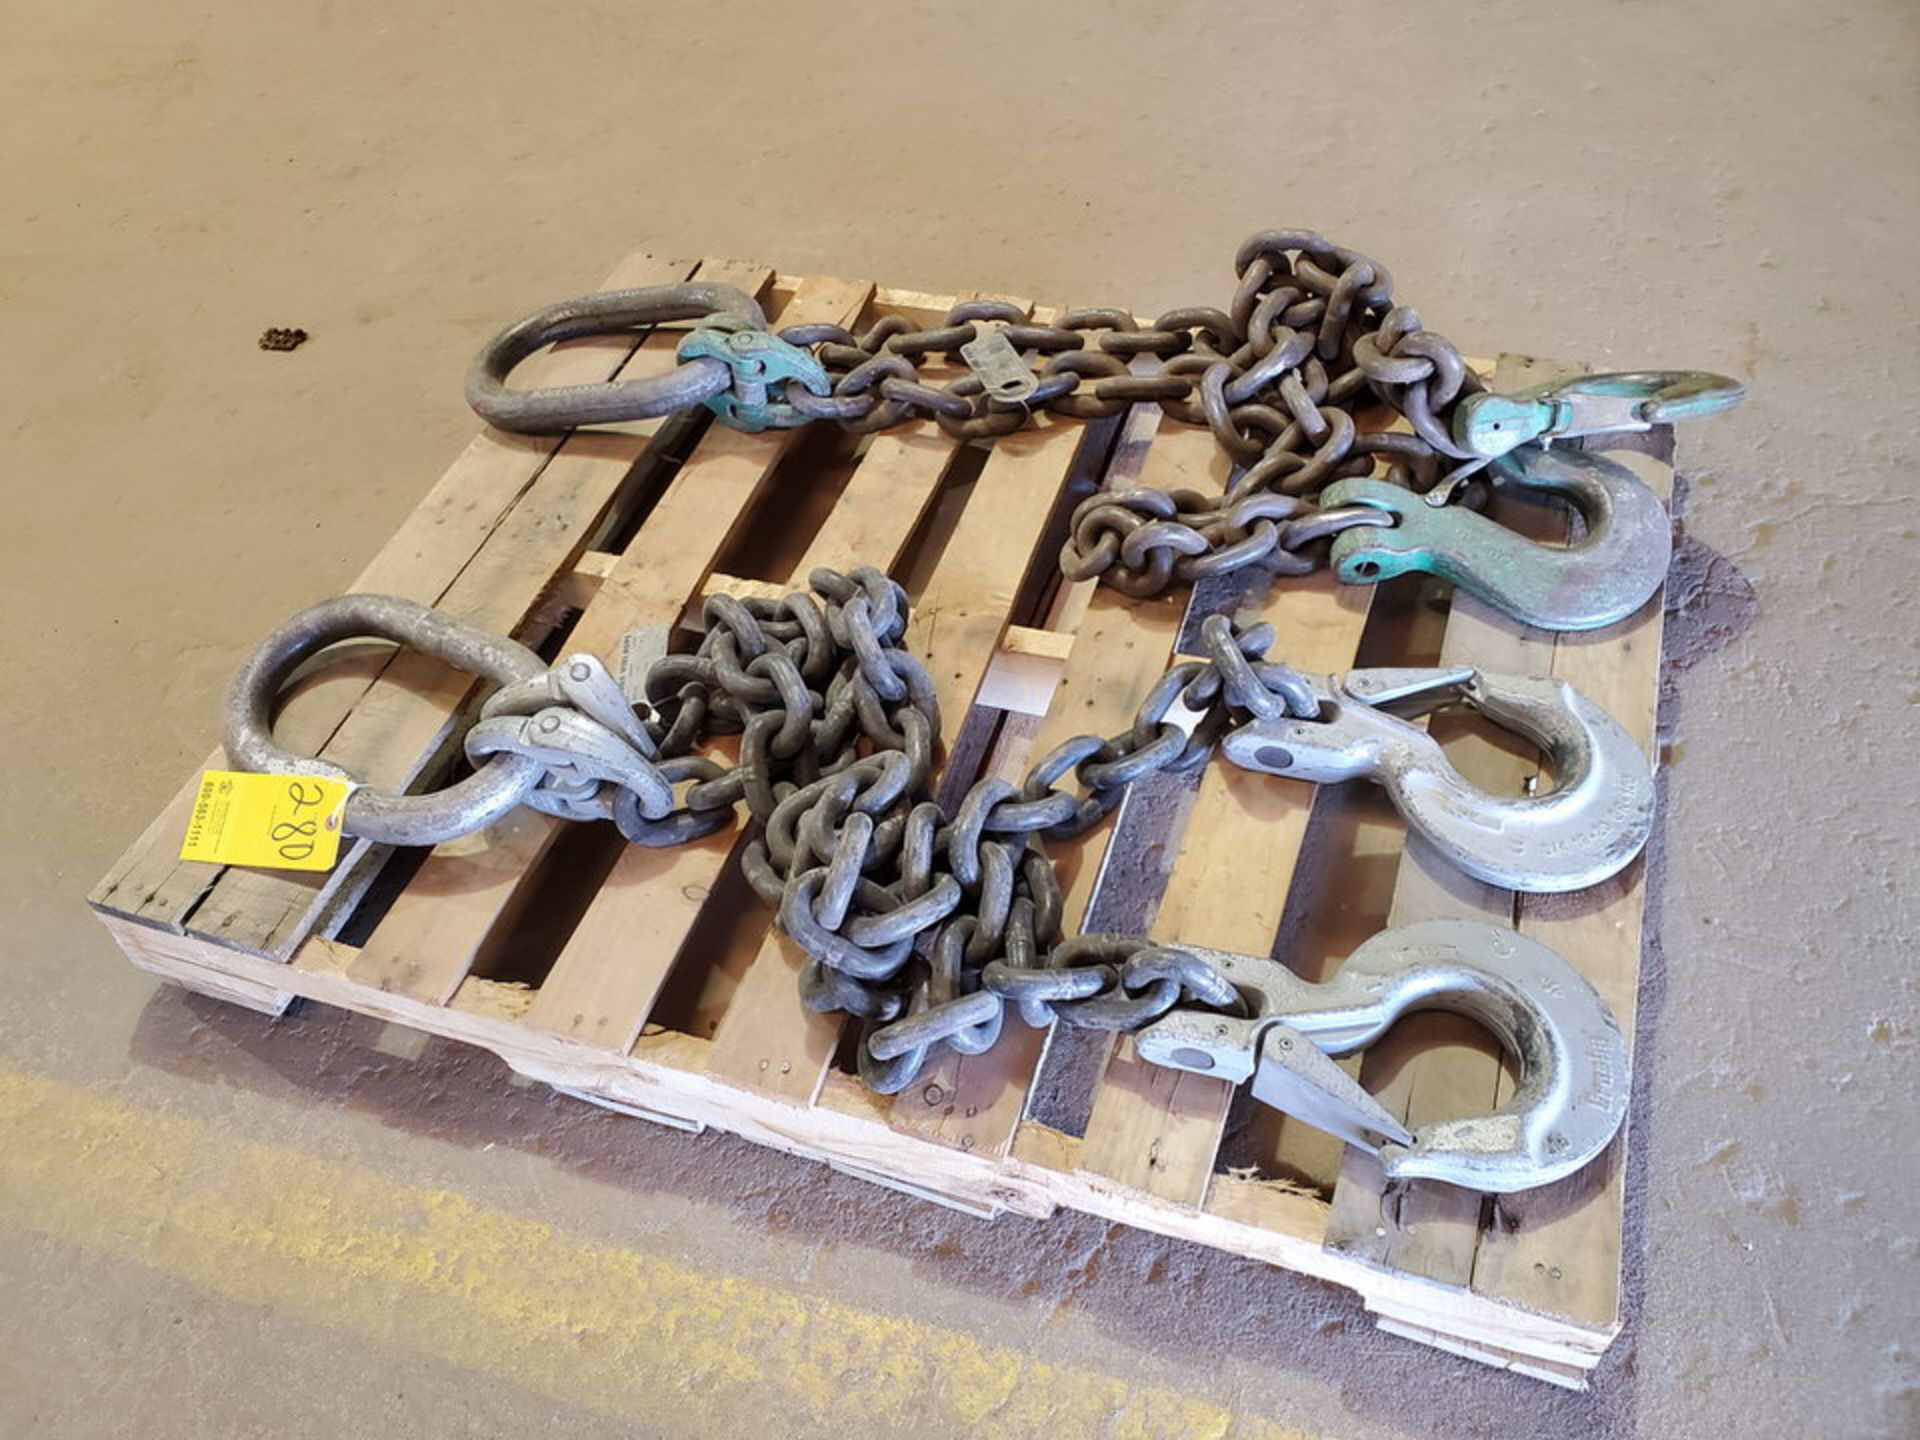 Hvy Duty Lifting Chains - Image 6 of 7